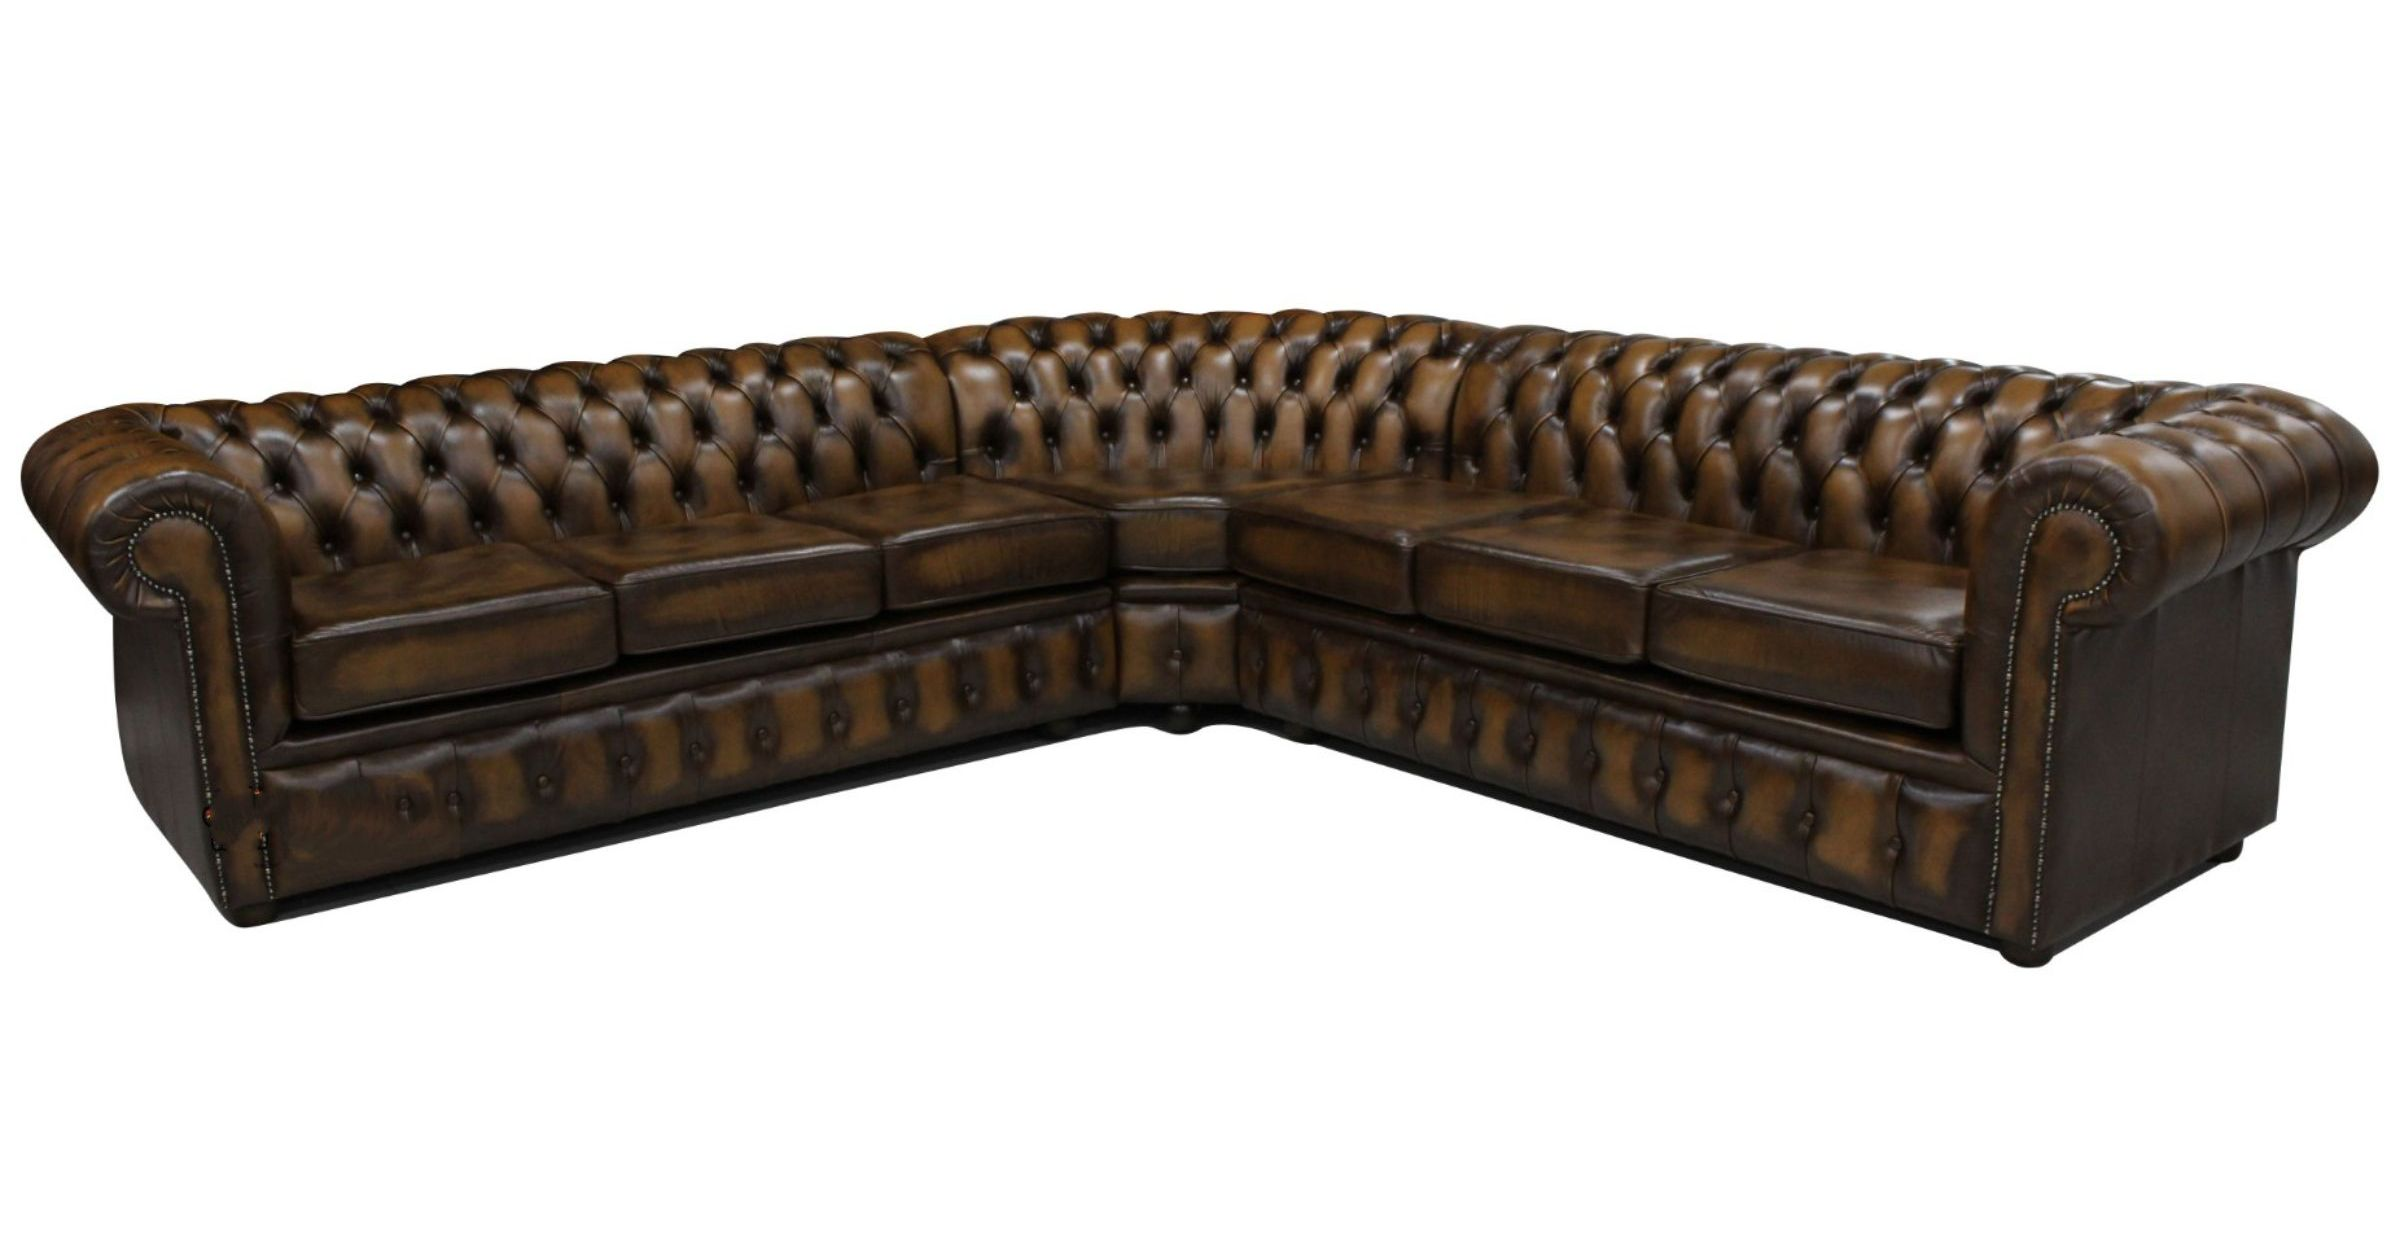 4 Seater Chesterfield Corner Sofa Chesterfield Corner Sofa Unit 6 Seater Antique Brown